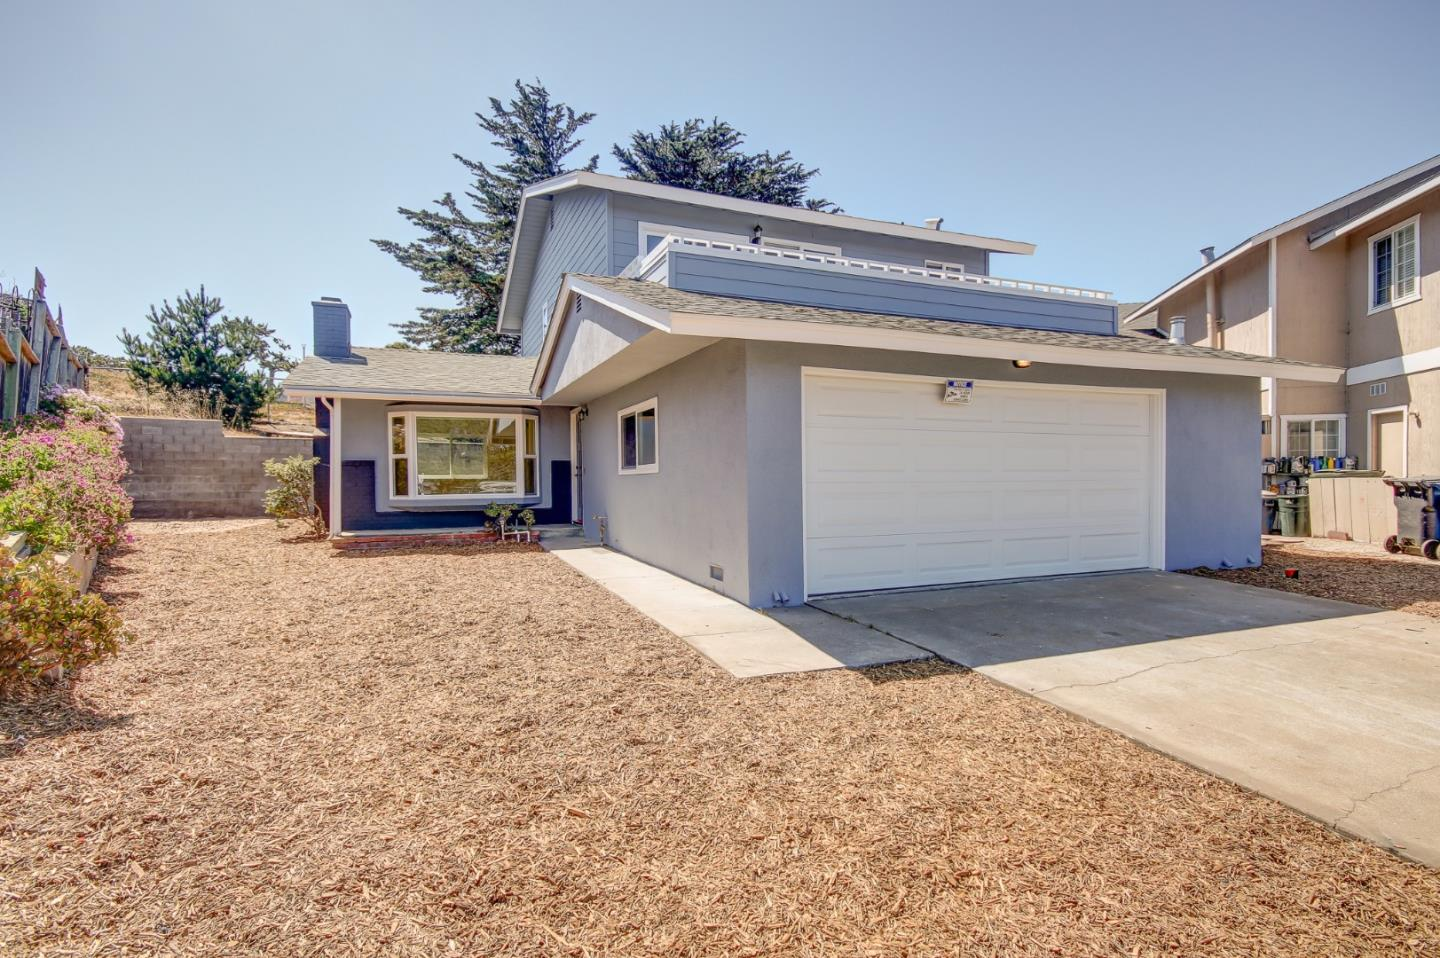 Photo of 8 Seminole CT, SEASIDE, CA 93955